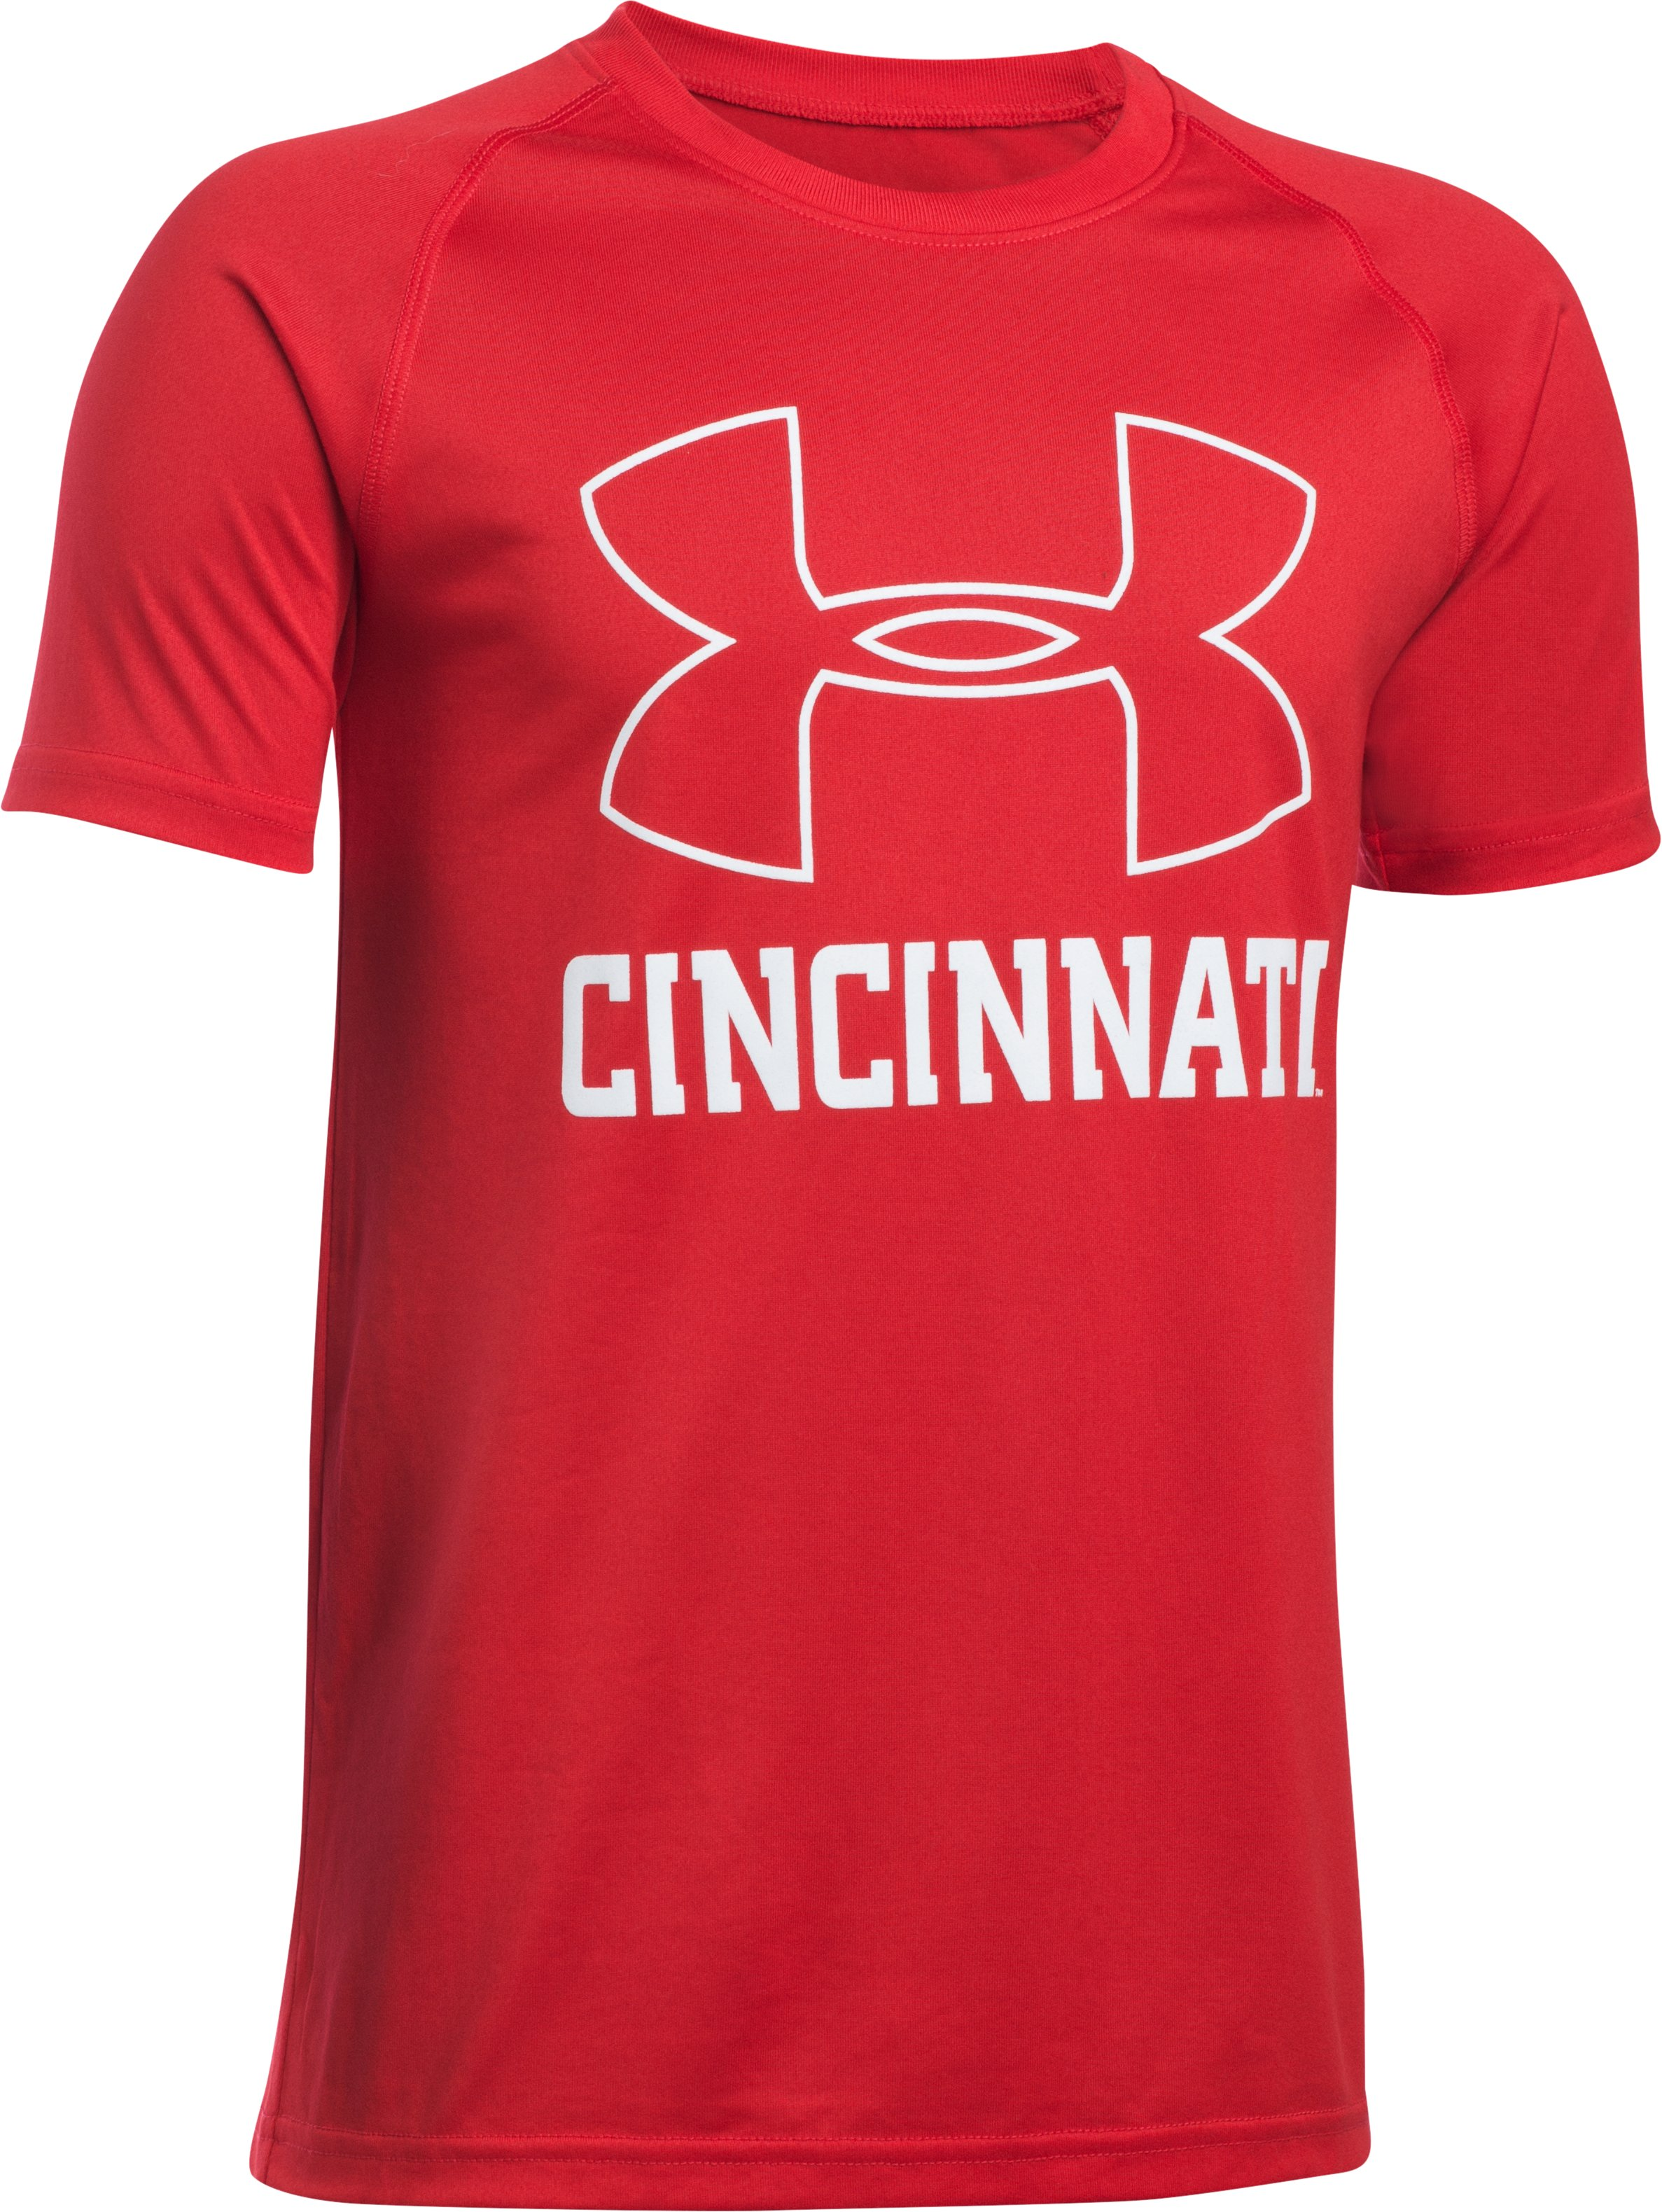 Boys' Cincinnati Charged Cotton® T-Shirt, Red,